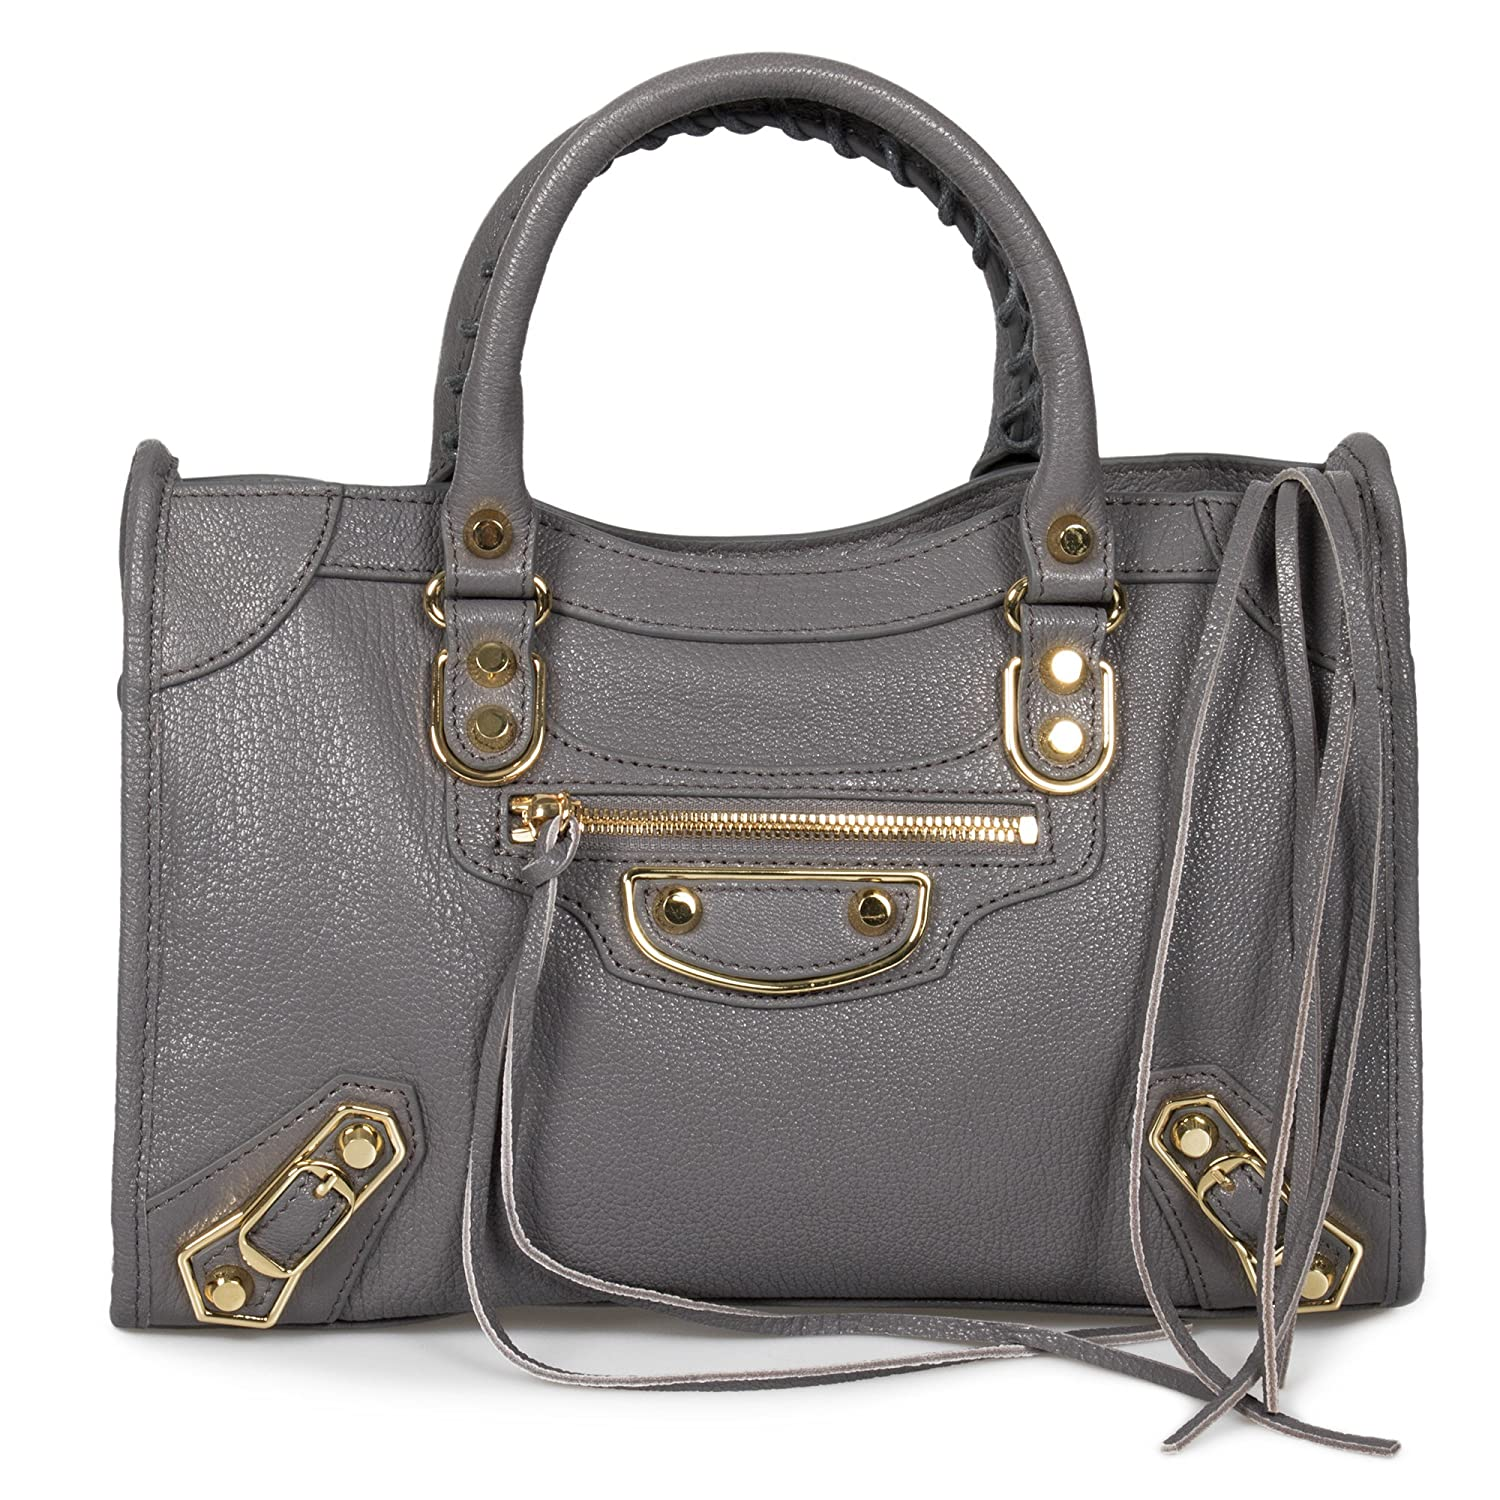 e2911f23e6 Balenciaga Classic Metallic Edge City Bag | Silver with Gold Hardware |  Small: Balenciaga: Amazon.ca: Shoes & Handbags